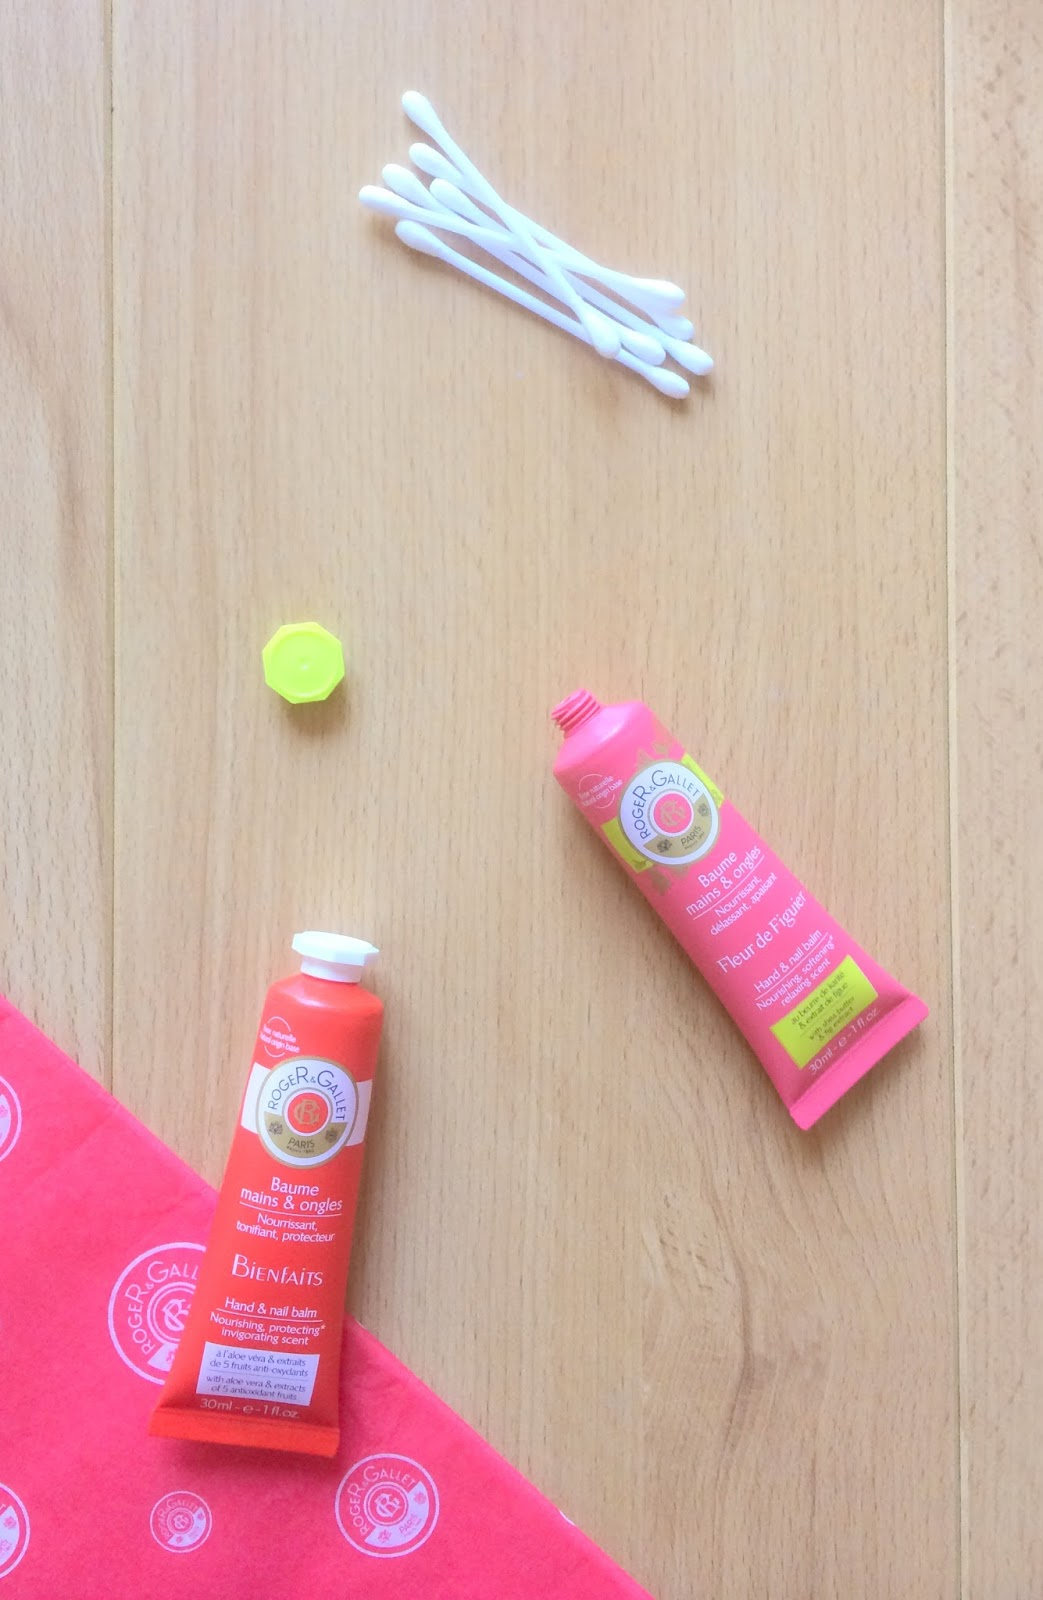 roger & gallet nail and hand balms review